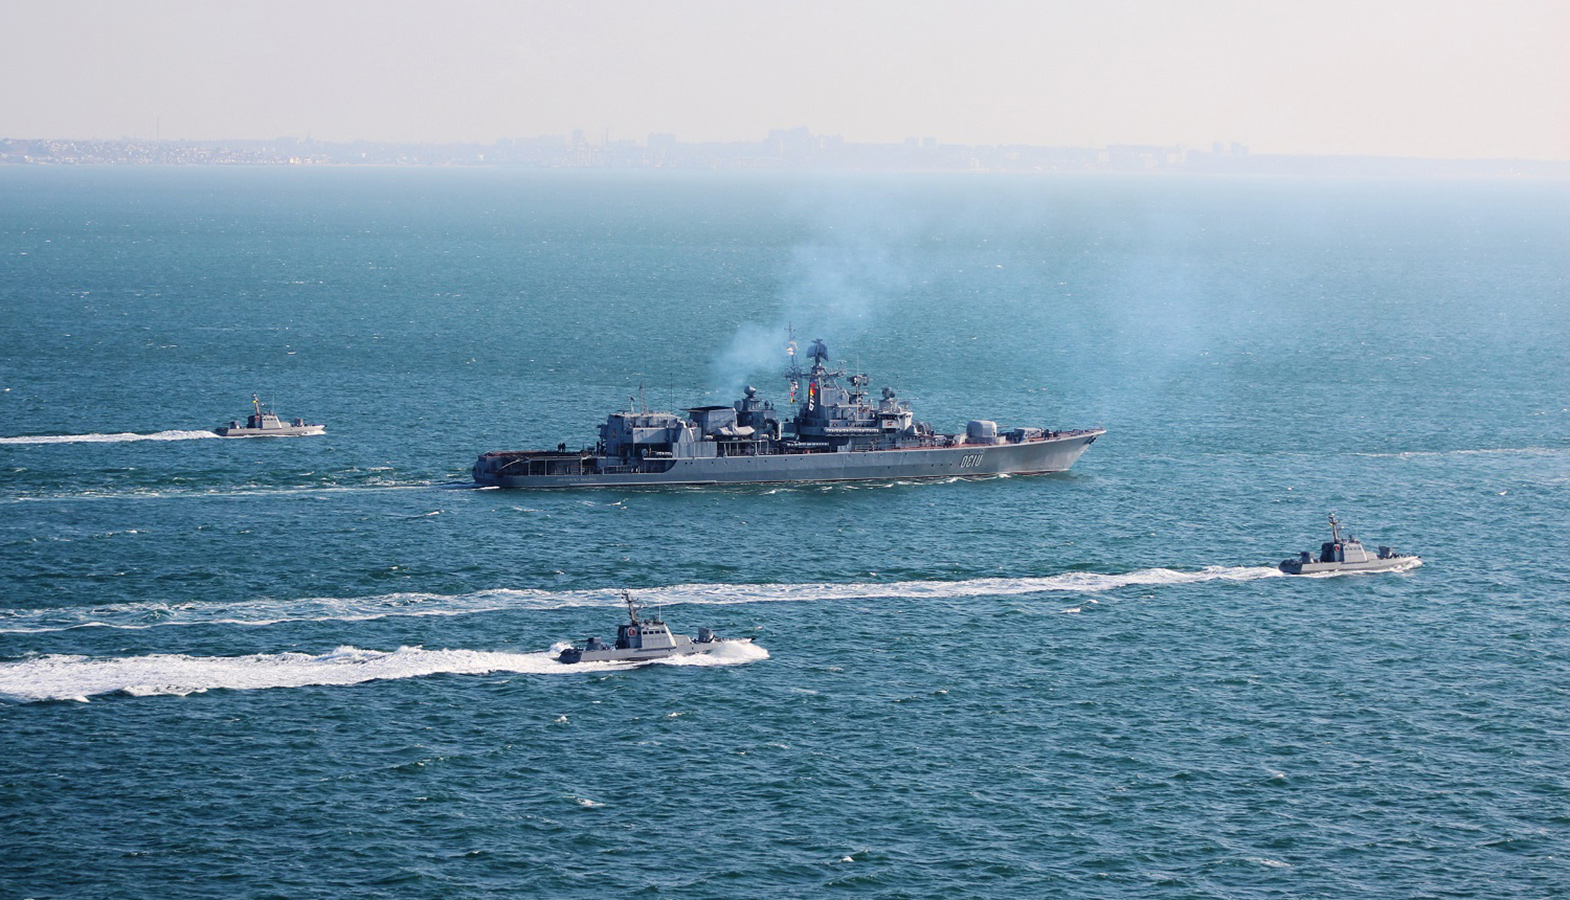 The Russian Black Sea Fleet Monitors The Actions Of NATO Ships And Aircraft During The Sea Breeze Exercise